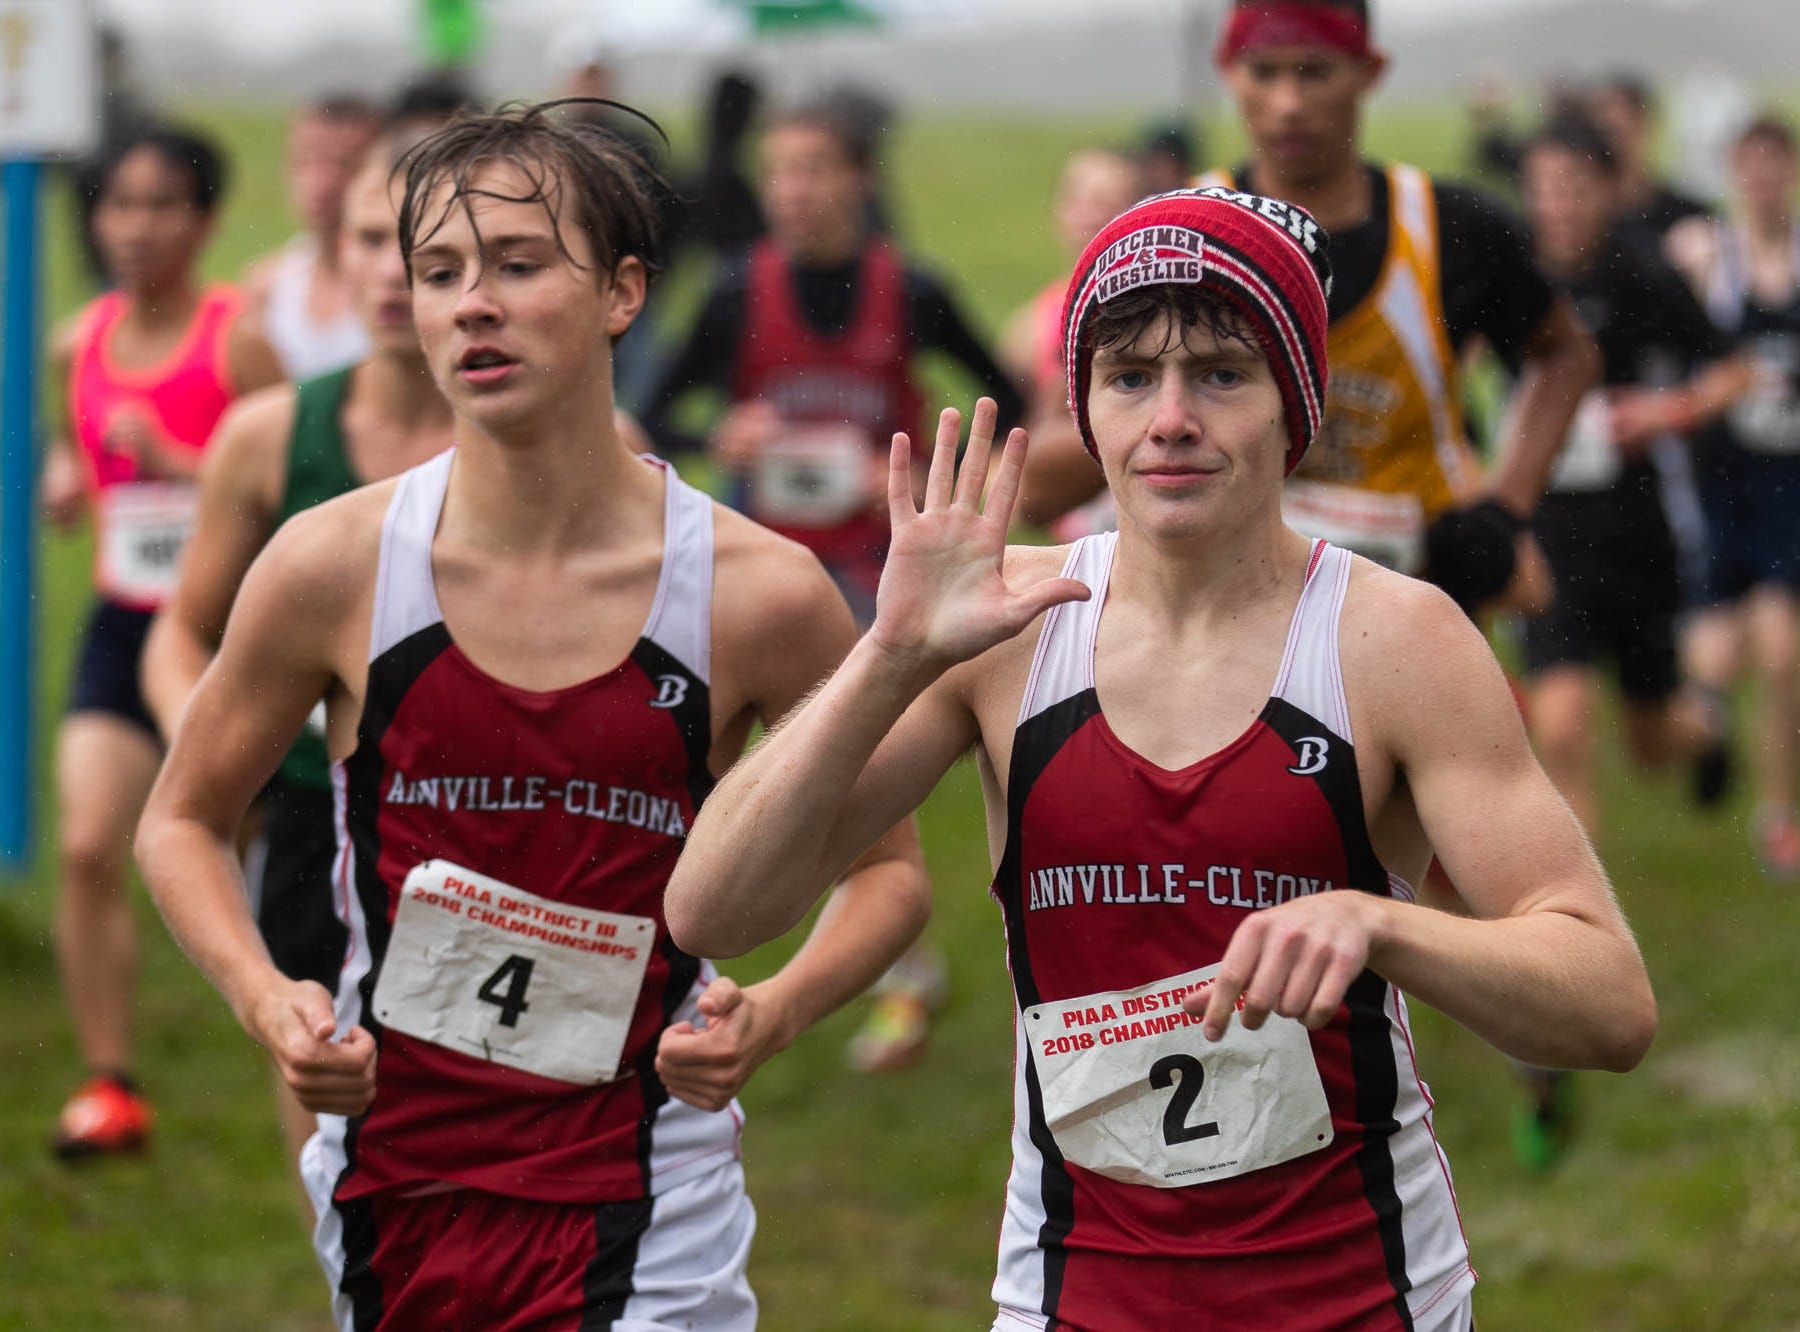 Annville-Cleona's Matthew Inman waves while racing in the Boys AA race during the PIAA District III Cross Country Championship, Saturday, Oct. 27, 2018, at Big Spring High School in Newville.